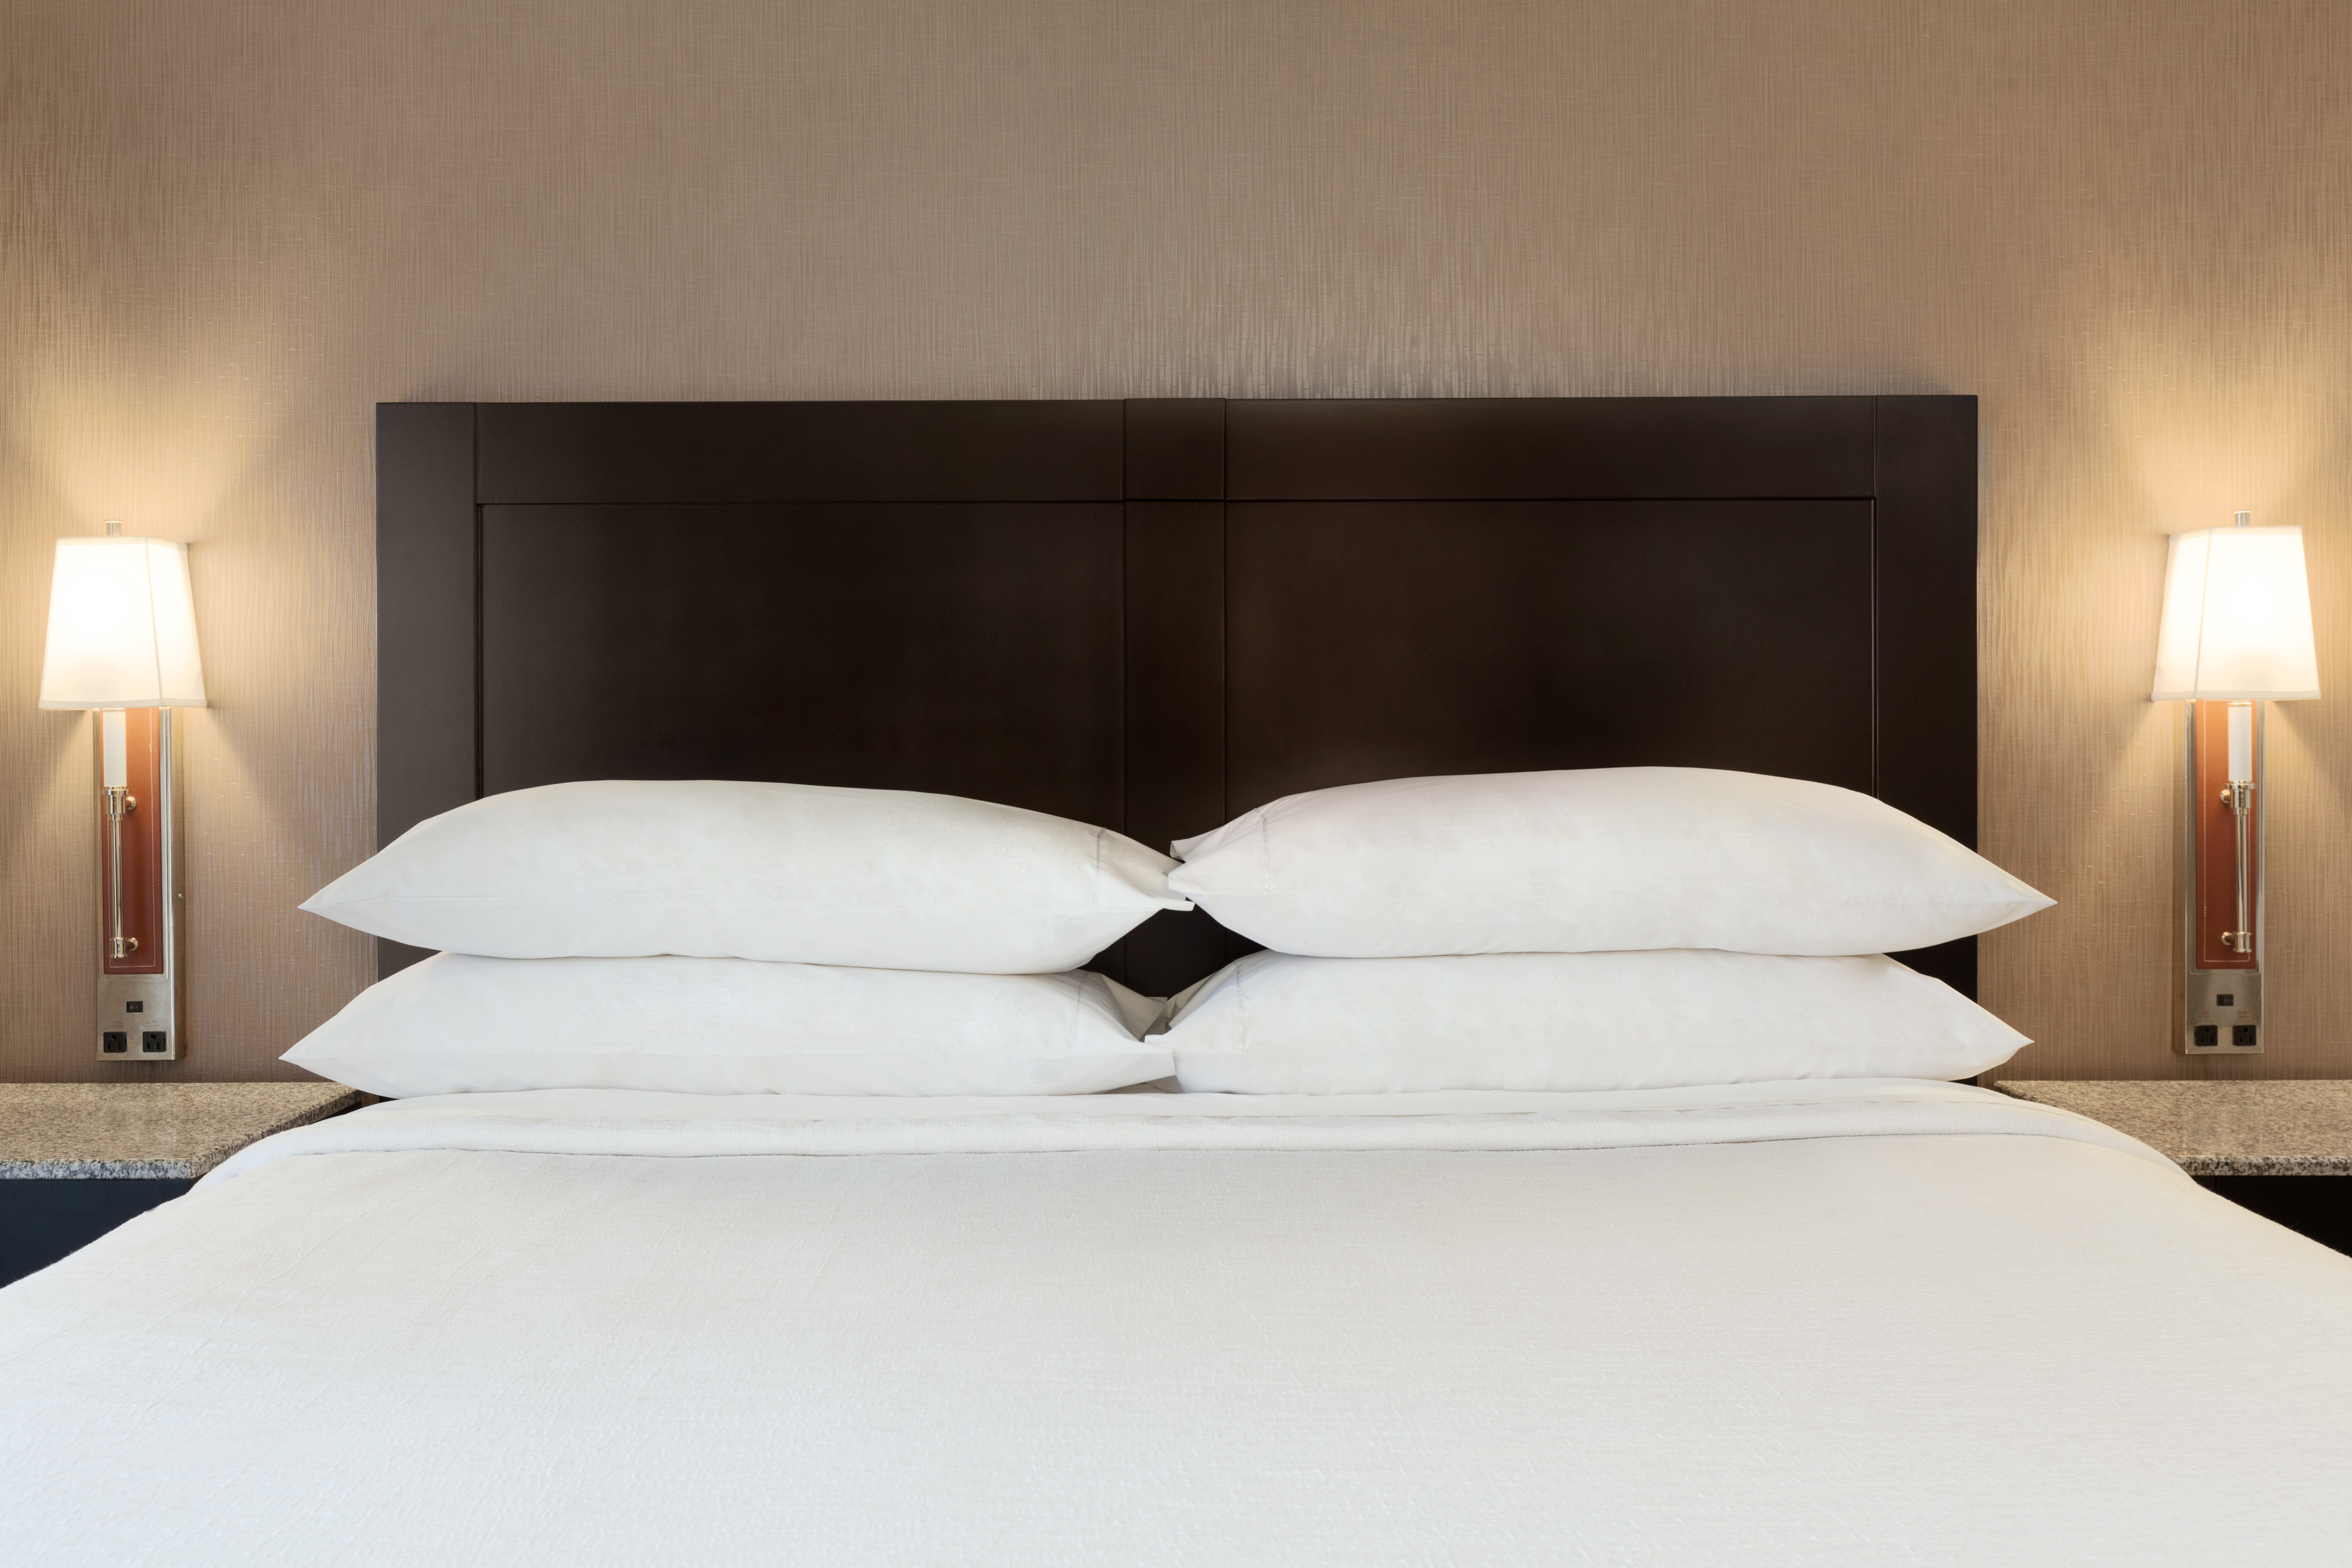 https://www.hotelsbyday.com/_data/default-hotel_image/1/9485/laxhd-1-king-bed-suite-04.jpg